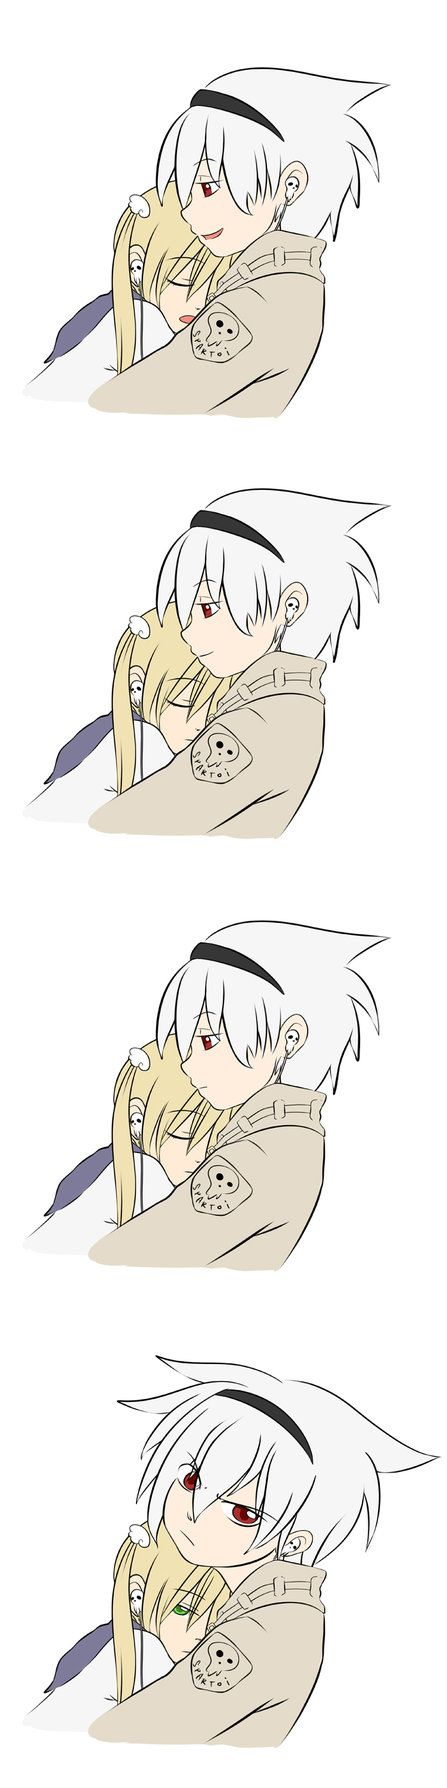 """Soul's face in the last one's like """"Go away! This is MY Maka!!""""- Super Nice Guy by yookeeah on DeviantArt"""